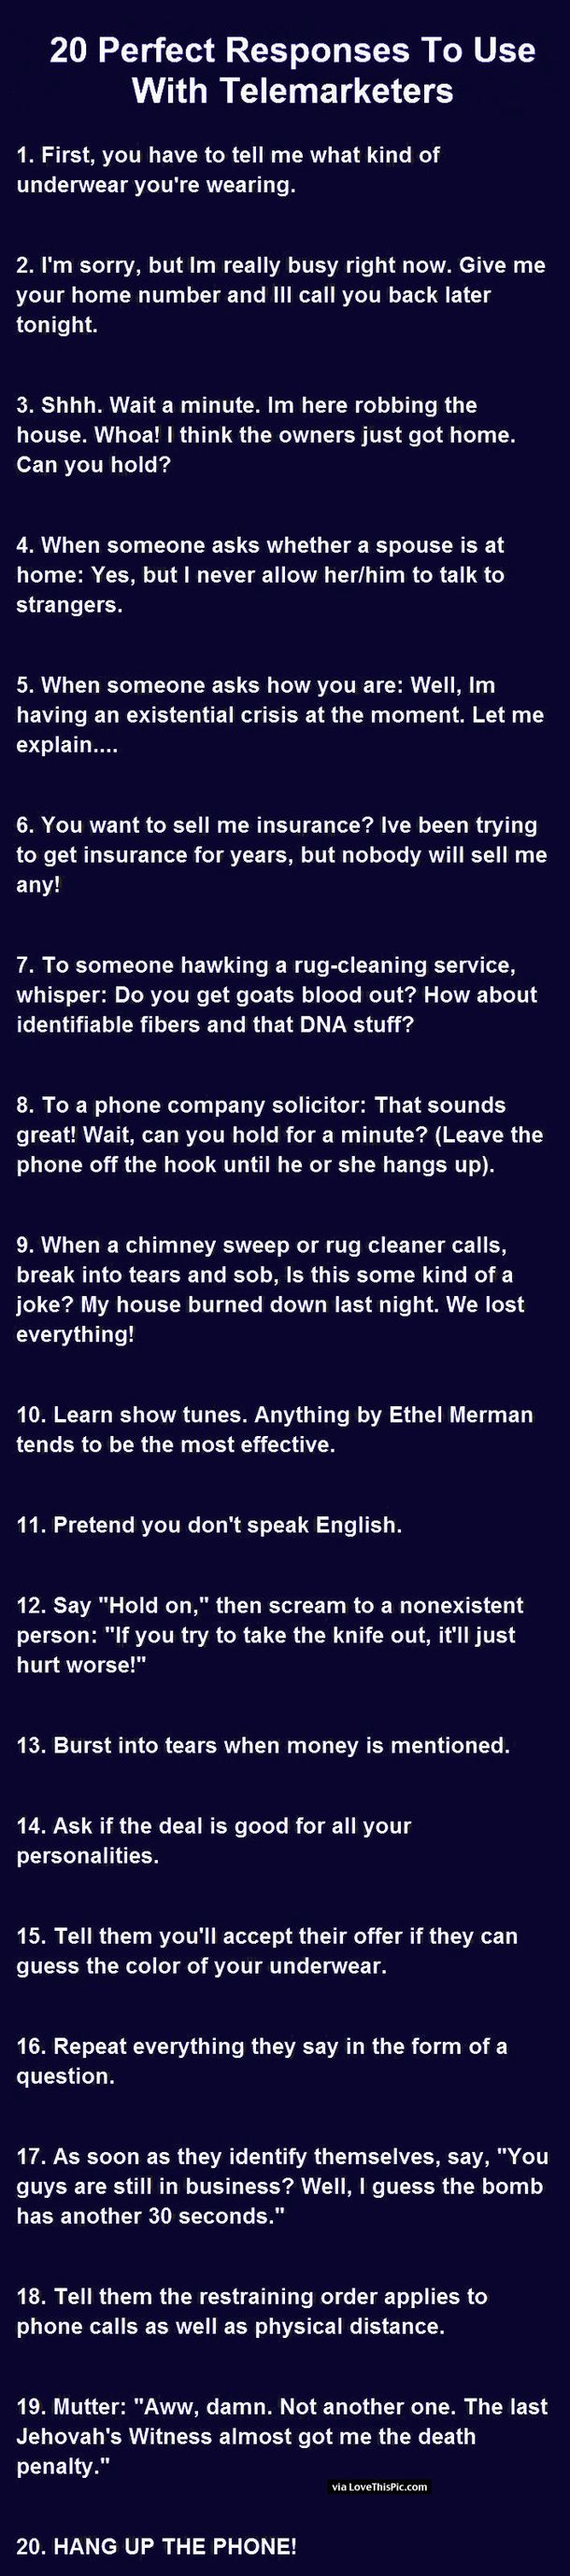 Funny Answers To Phone Calls : funny, answers, phone, calls, Telemarketers, Ideas, Prank, Calls,, Bones, Funny,, Annoying, People, Quotes